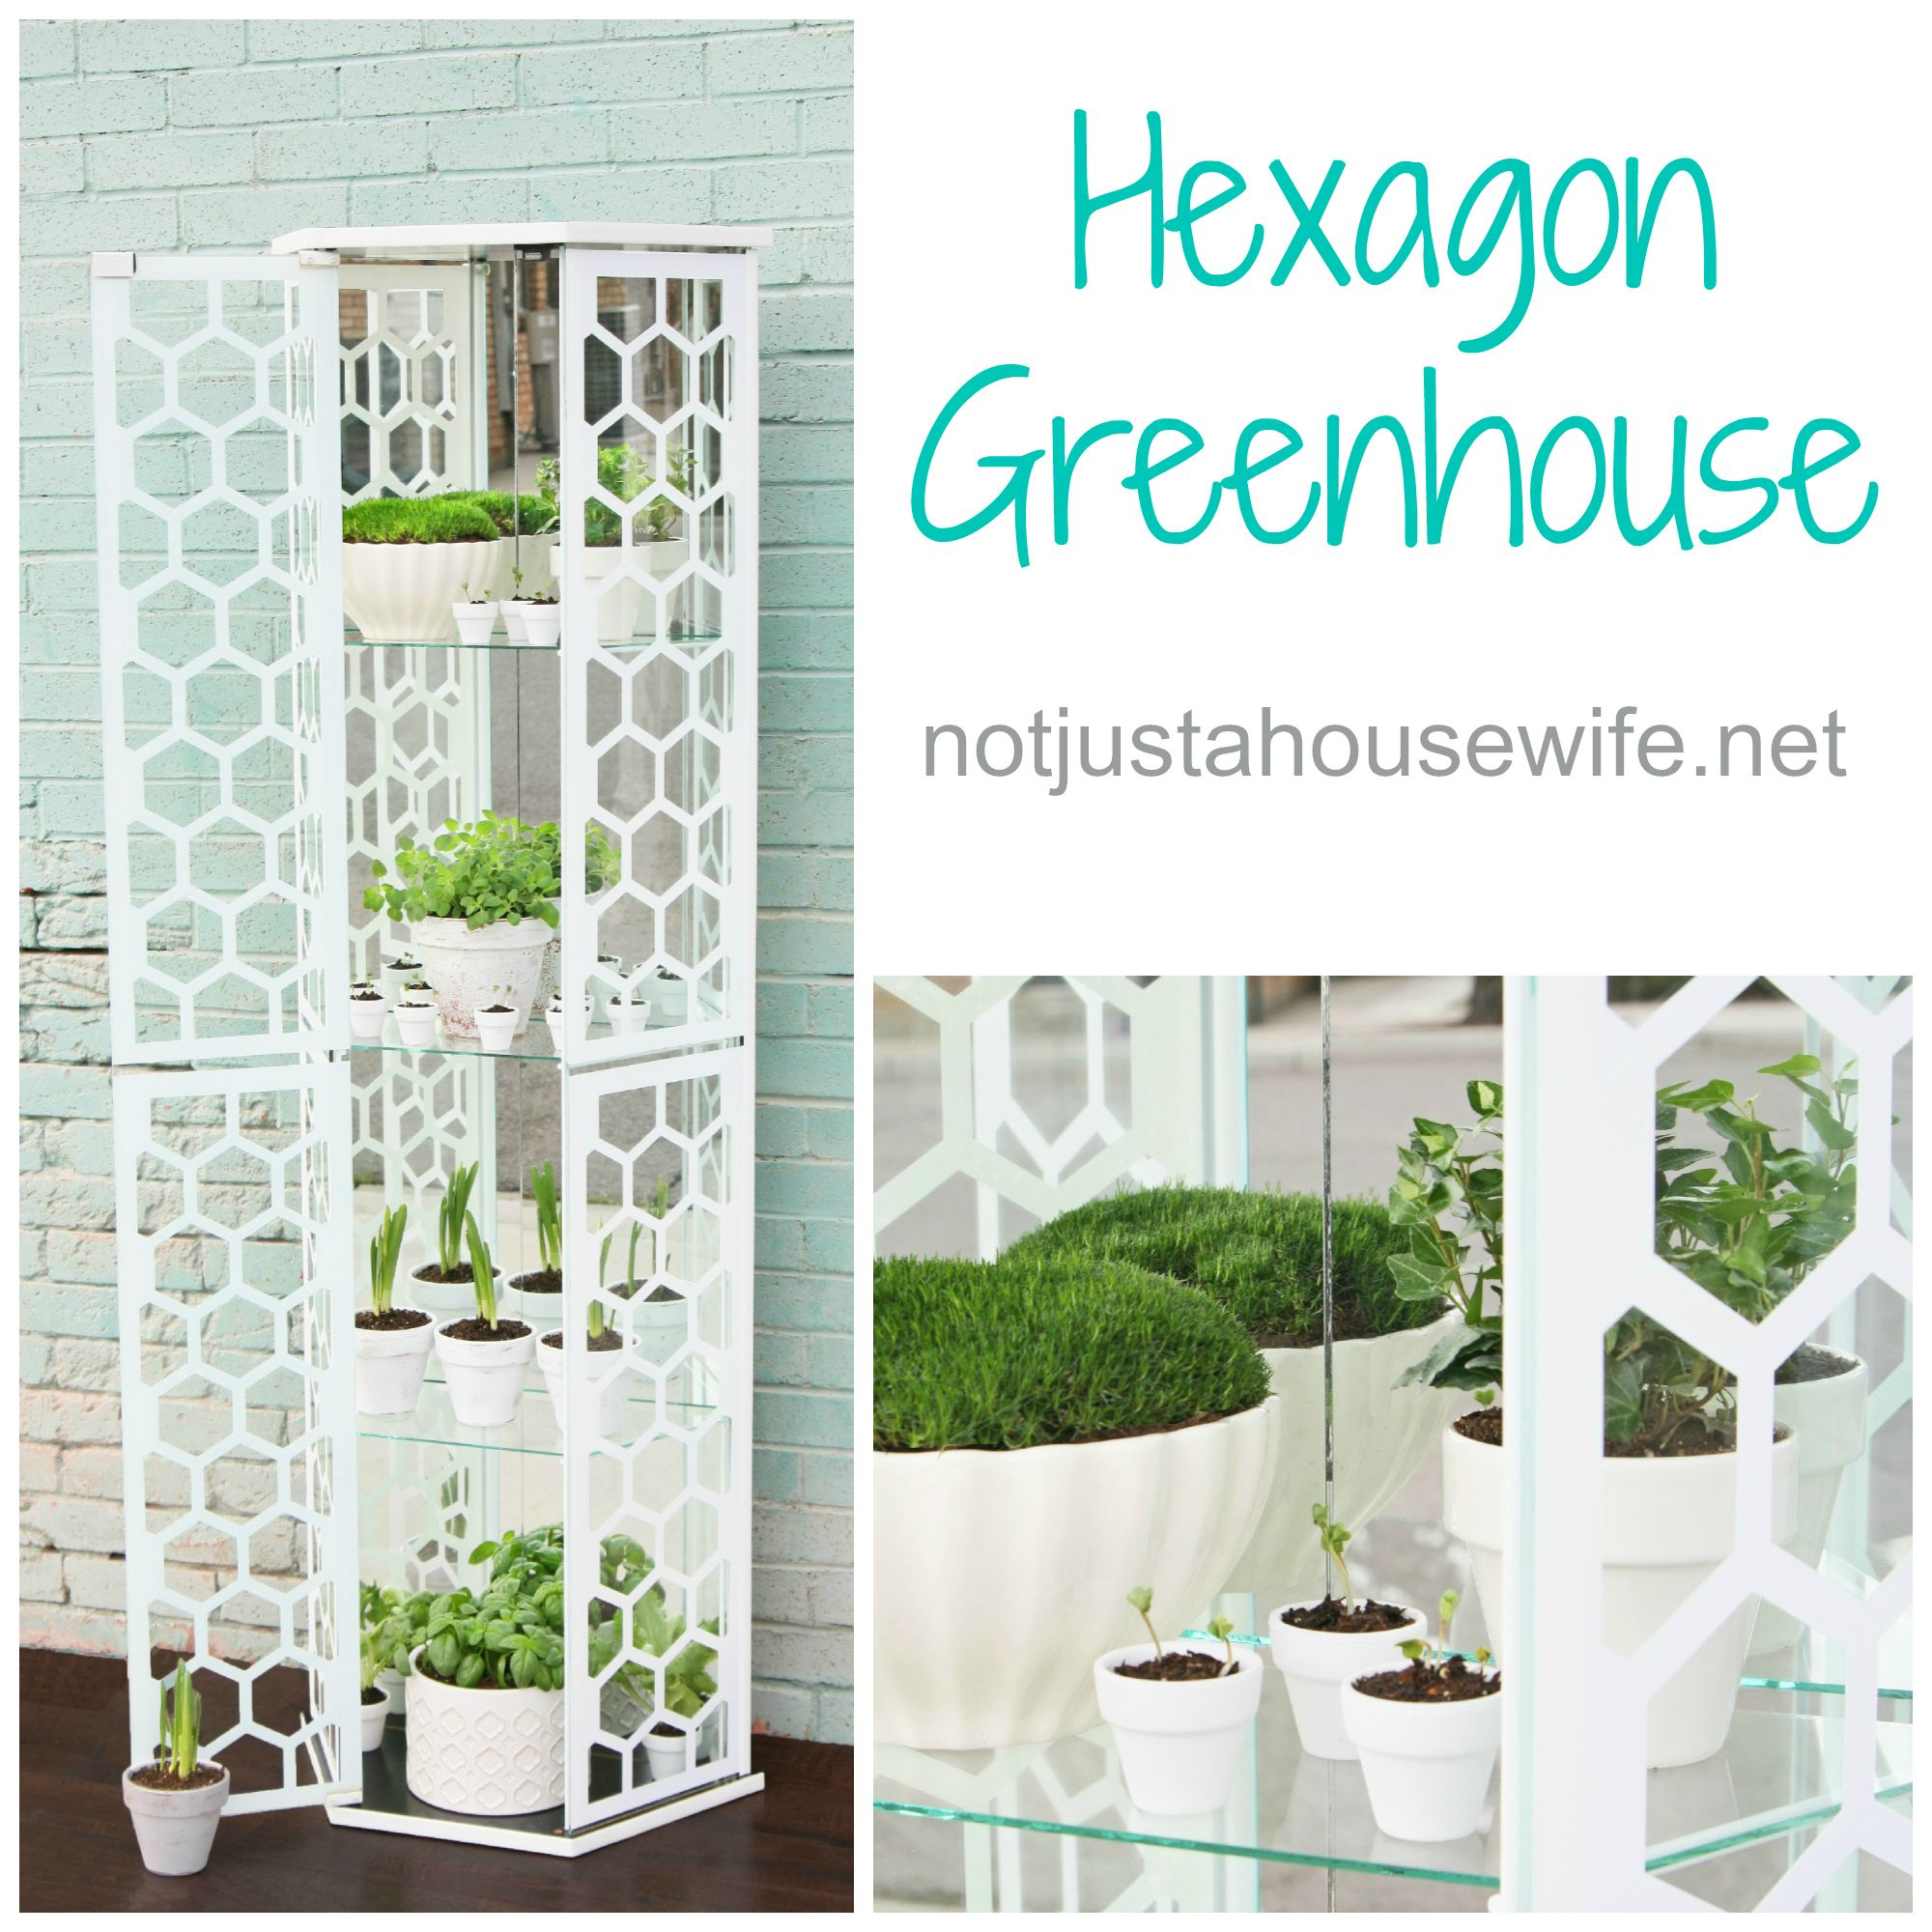 How to make a greenhouse out of an old curio cabinet #hexagon | Home ...